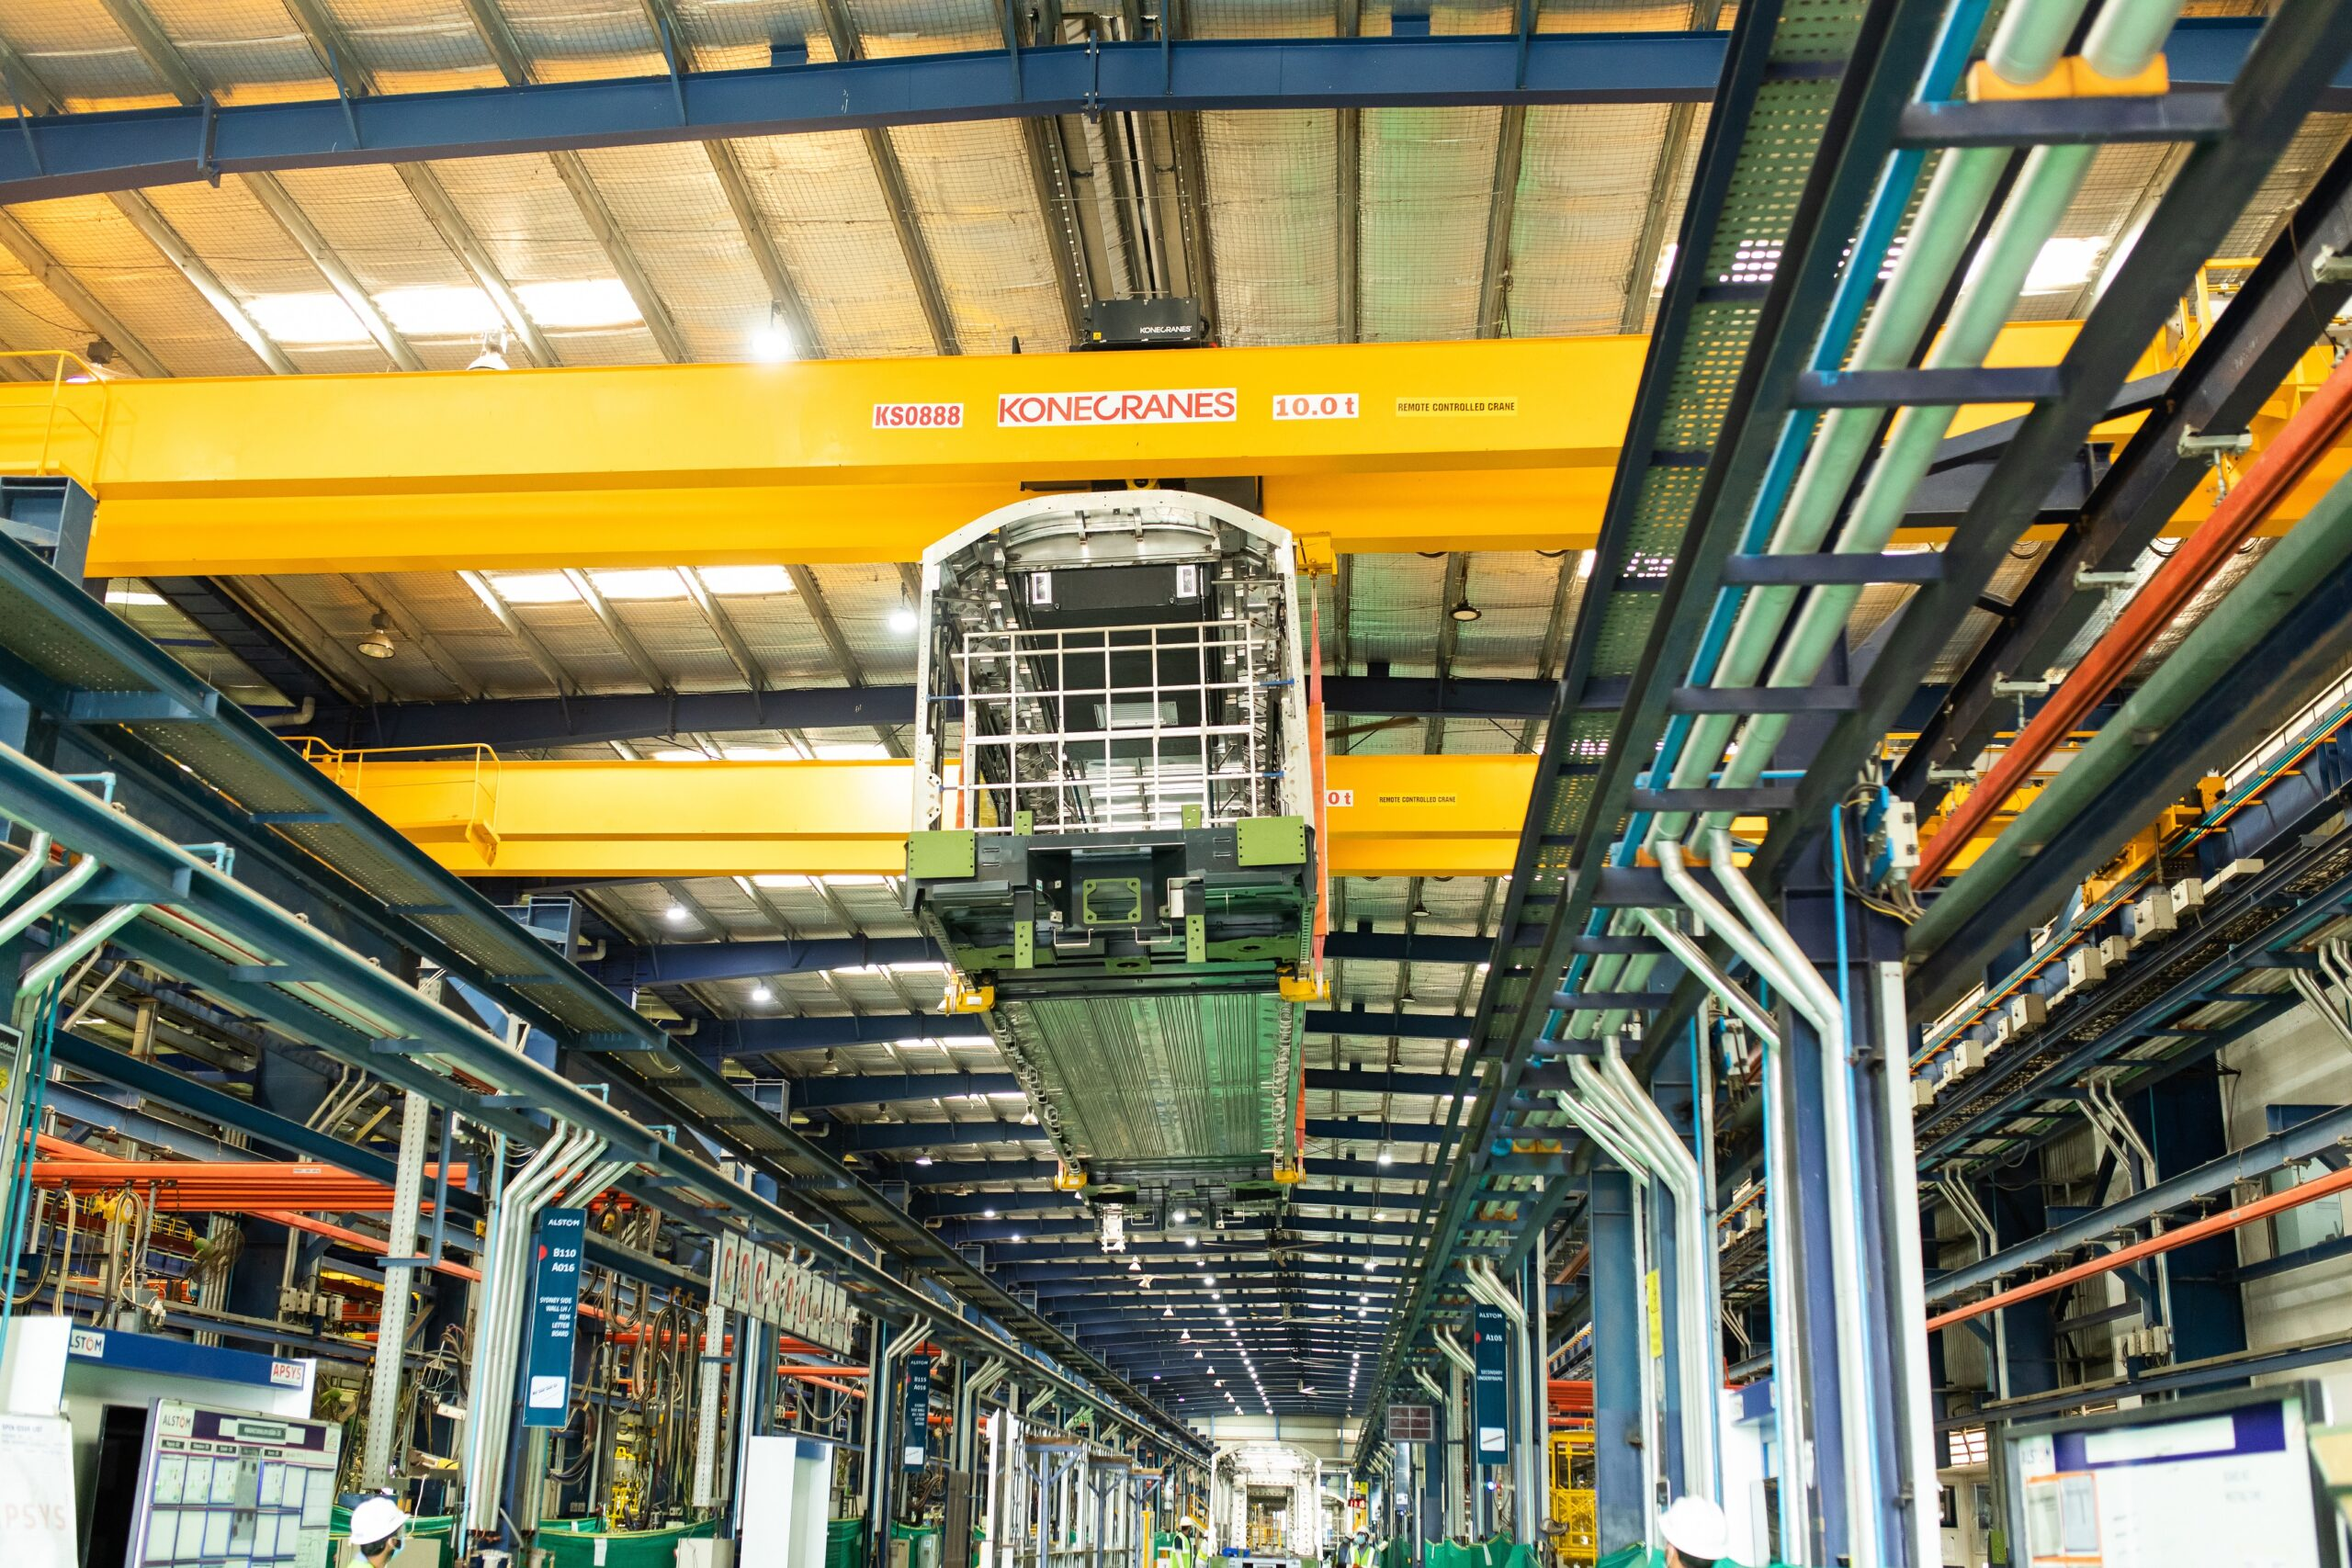 Alstom Metropolis car body being built at SriCity factory in India